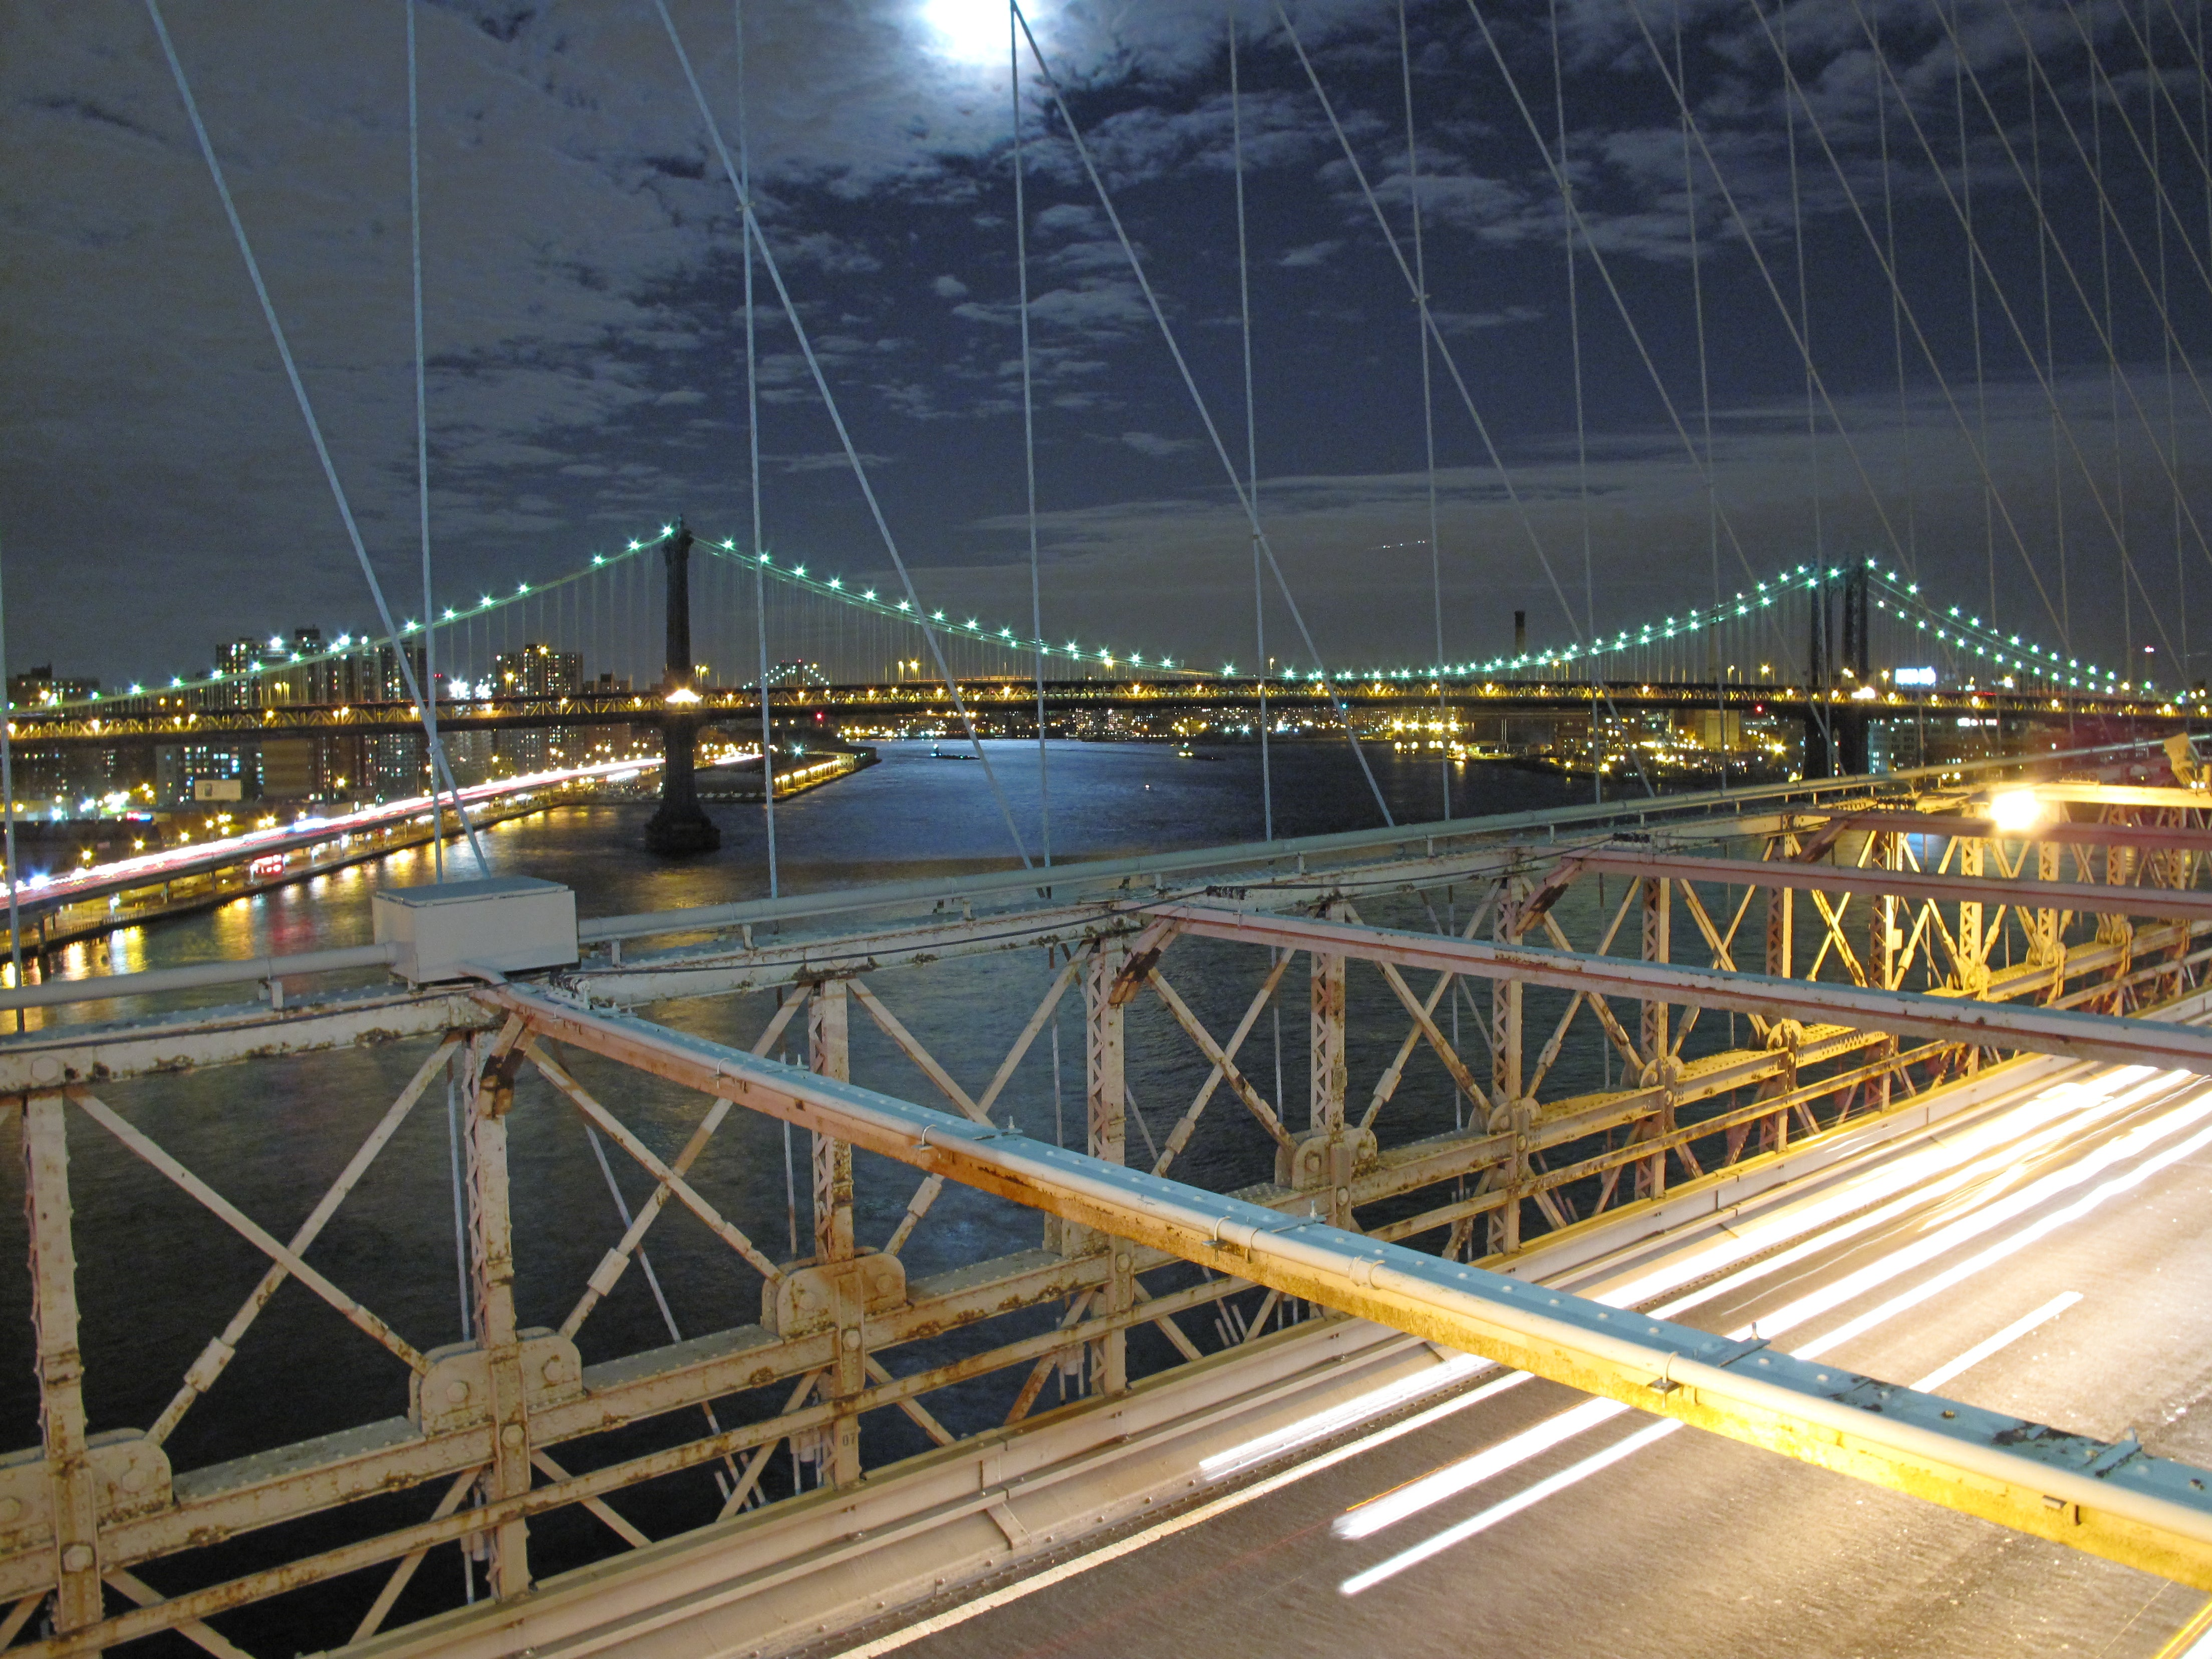 Transporte en Puente de Brooklyn